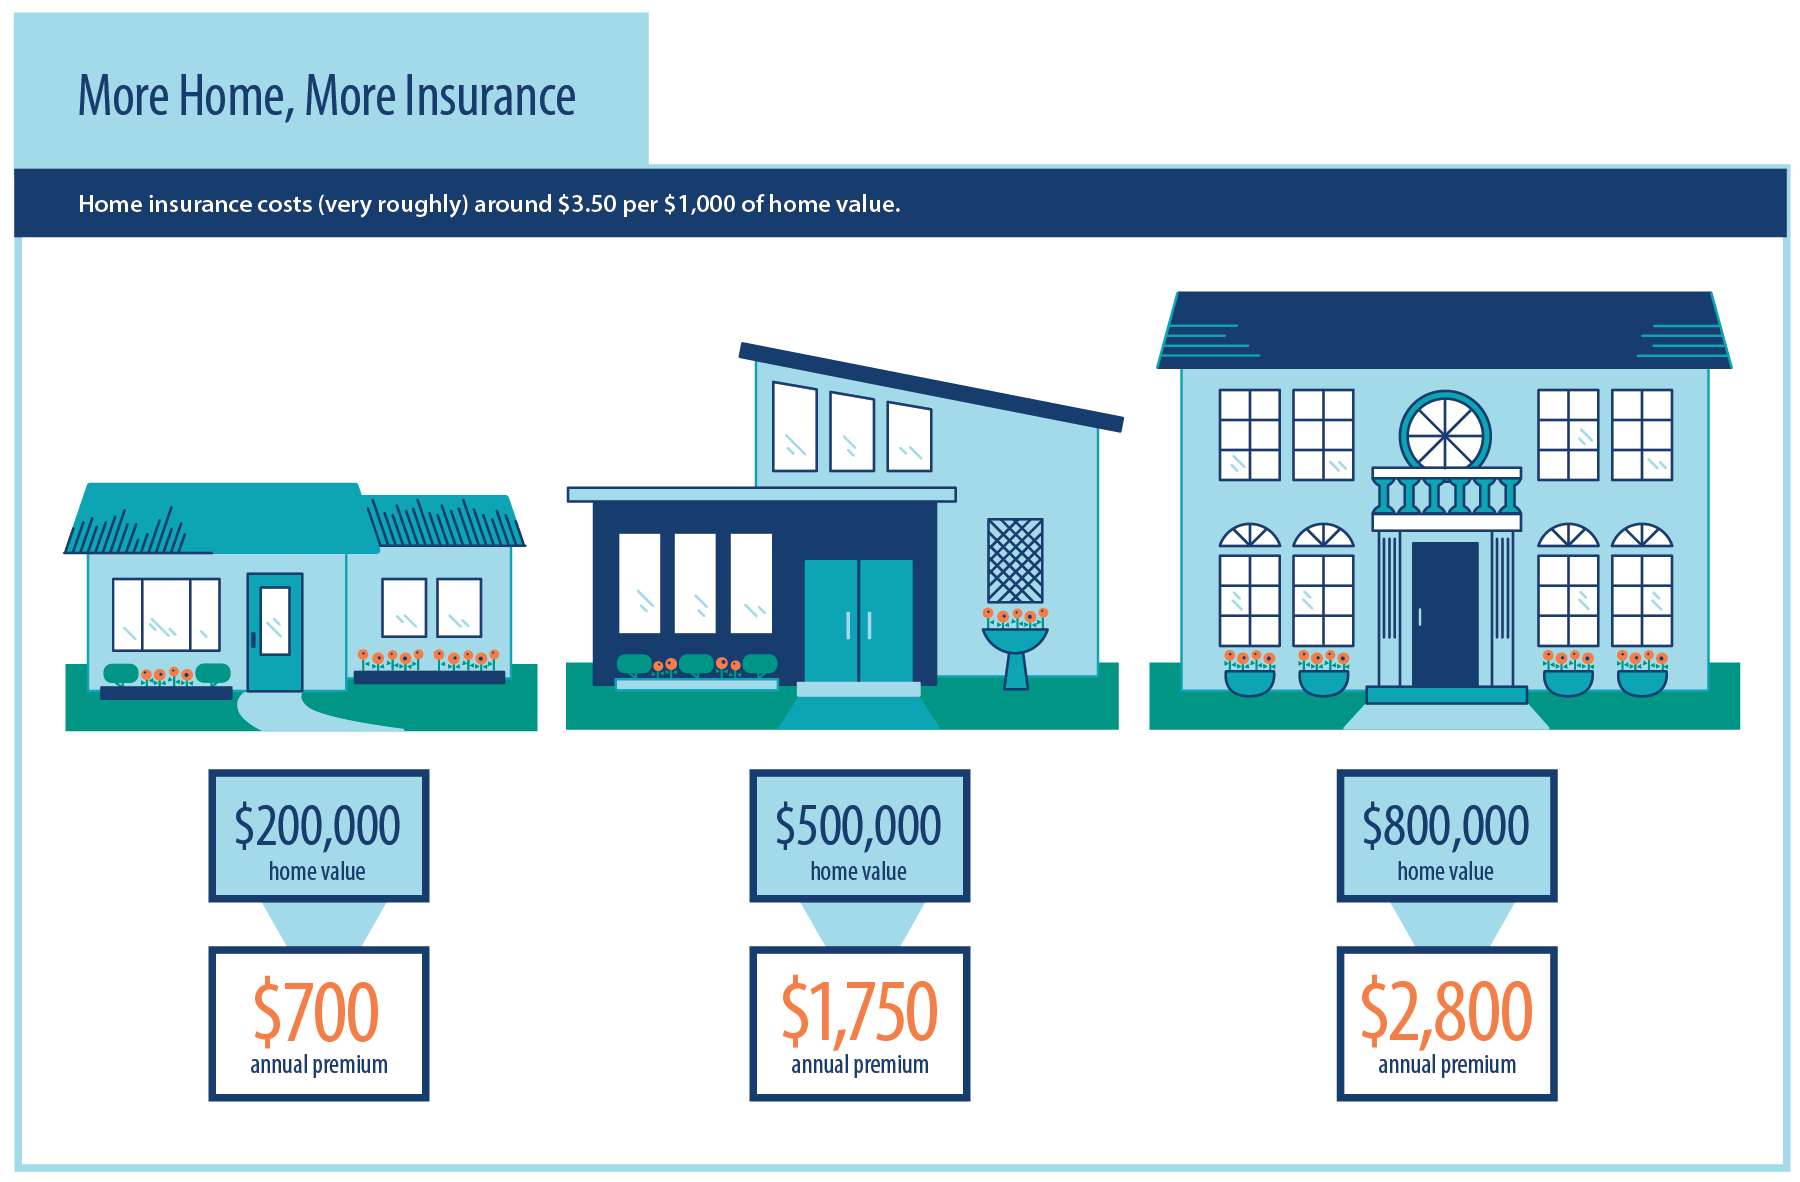 The average cost of home insurance